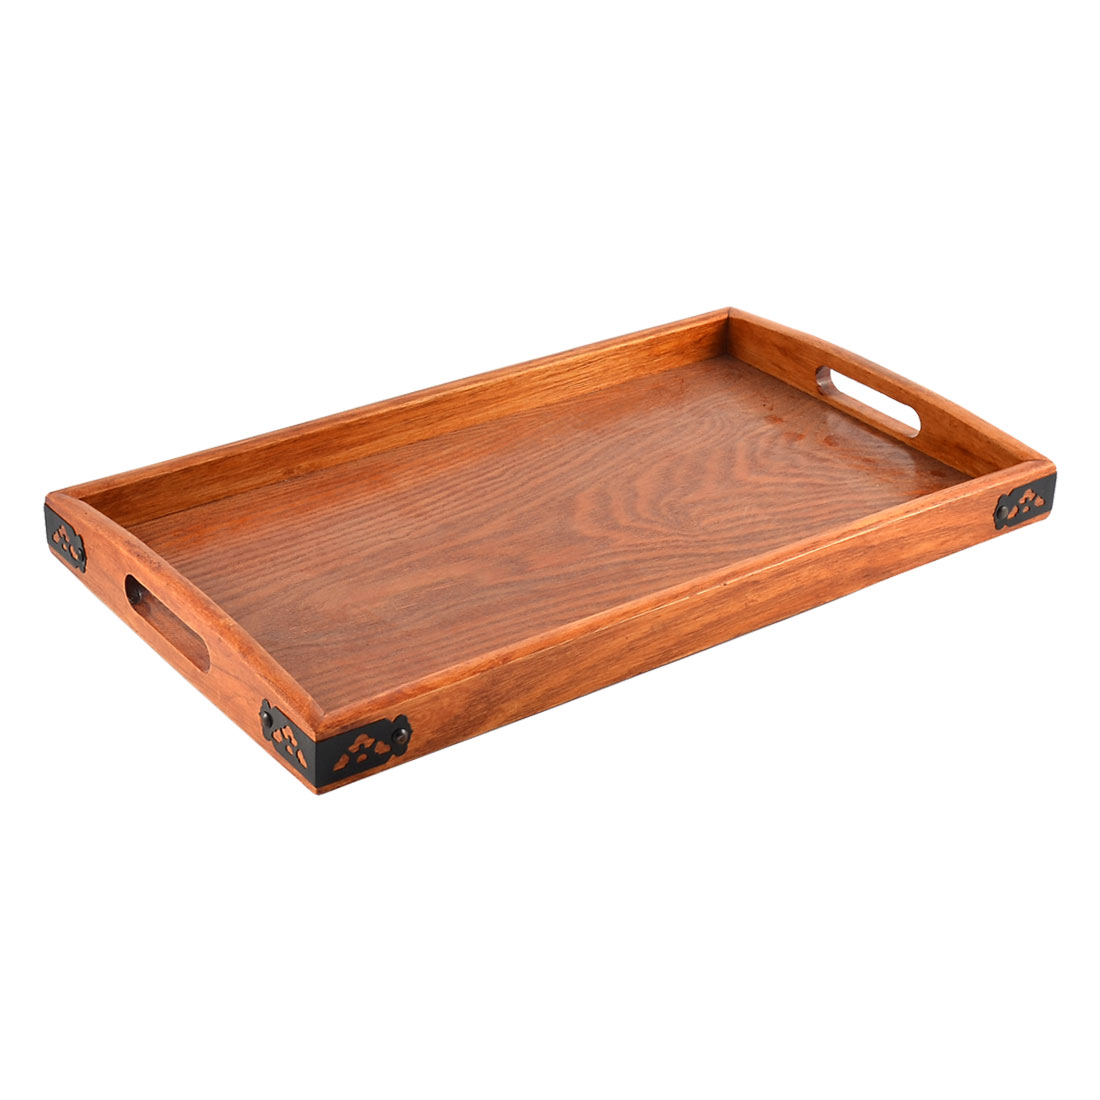 Restaurant Wood Rectangle Shape Lunch Food Serving Tray Container Dark Brown